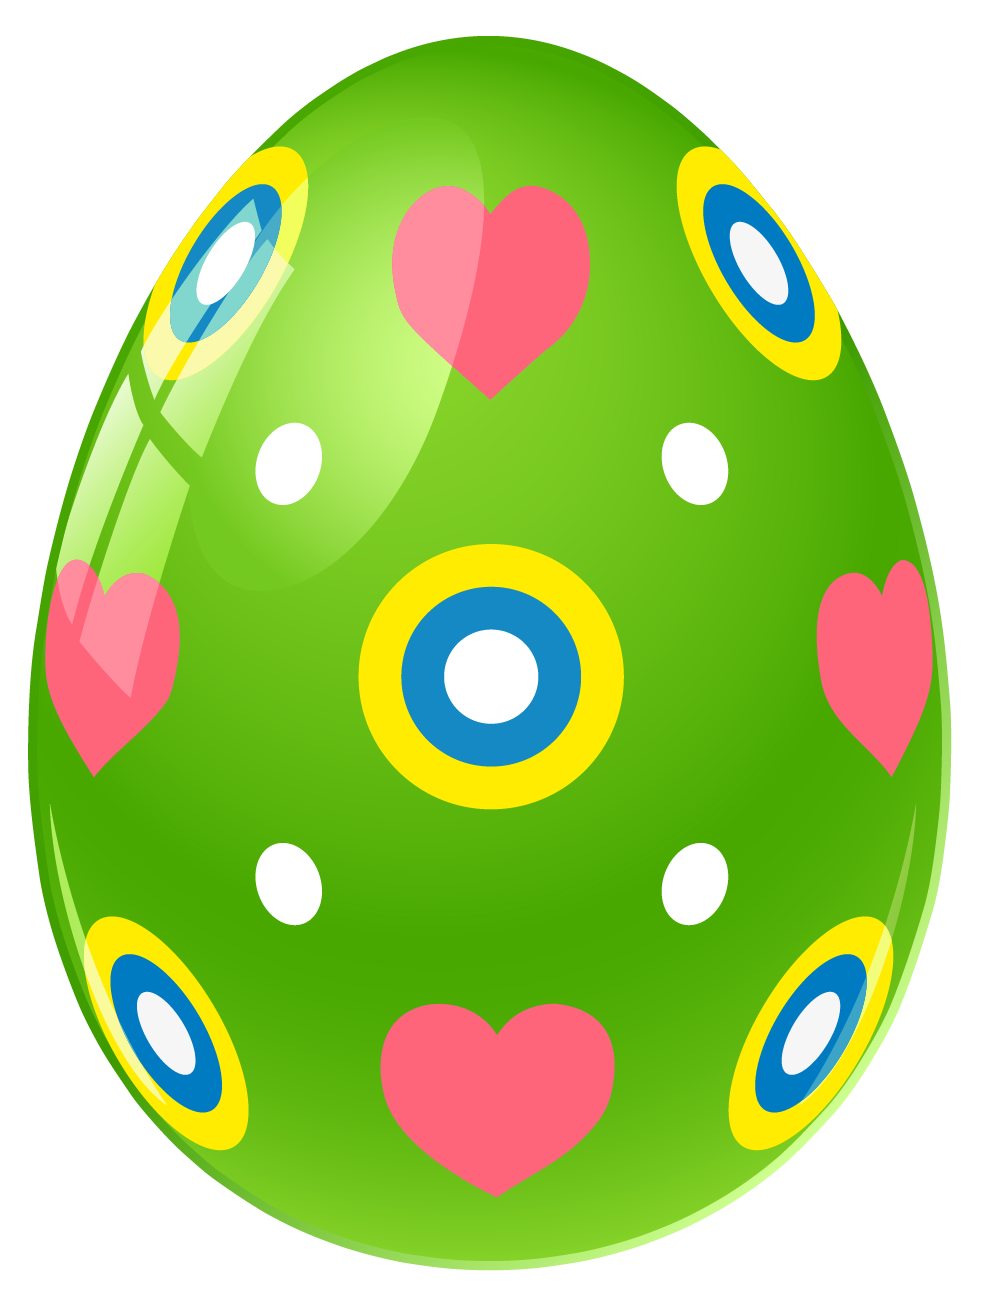 983x1297 Green Easter Egg With Hearts Png Clipart Pictureu200b Gallery